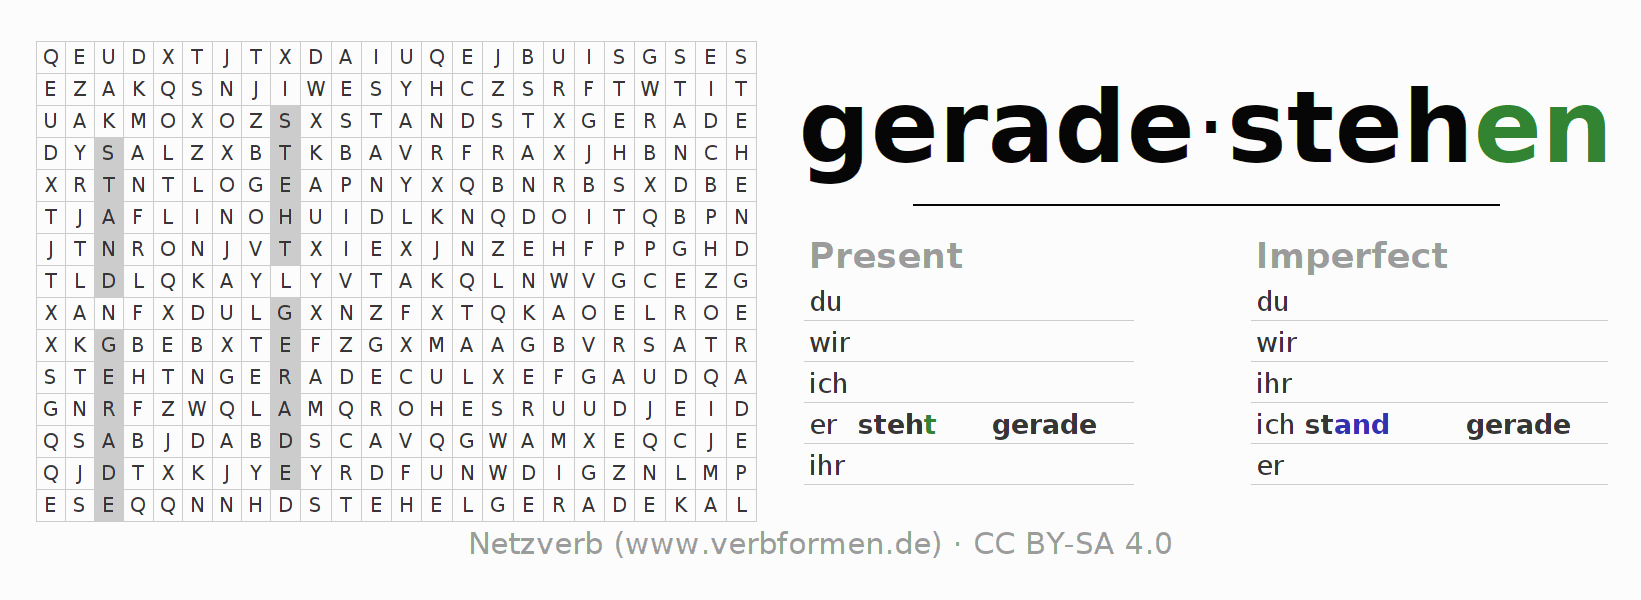 Word search puzzle for the conjugation of the verb geradestehen (hat)